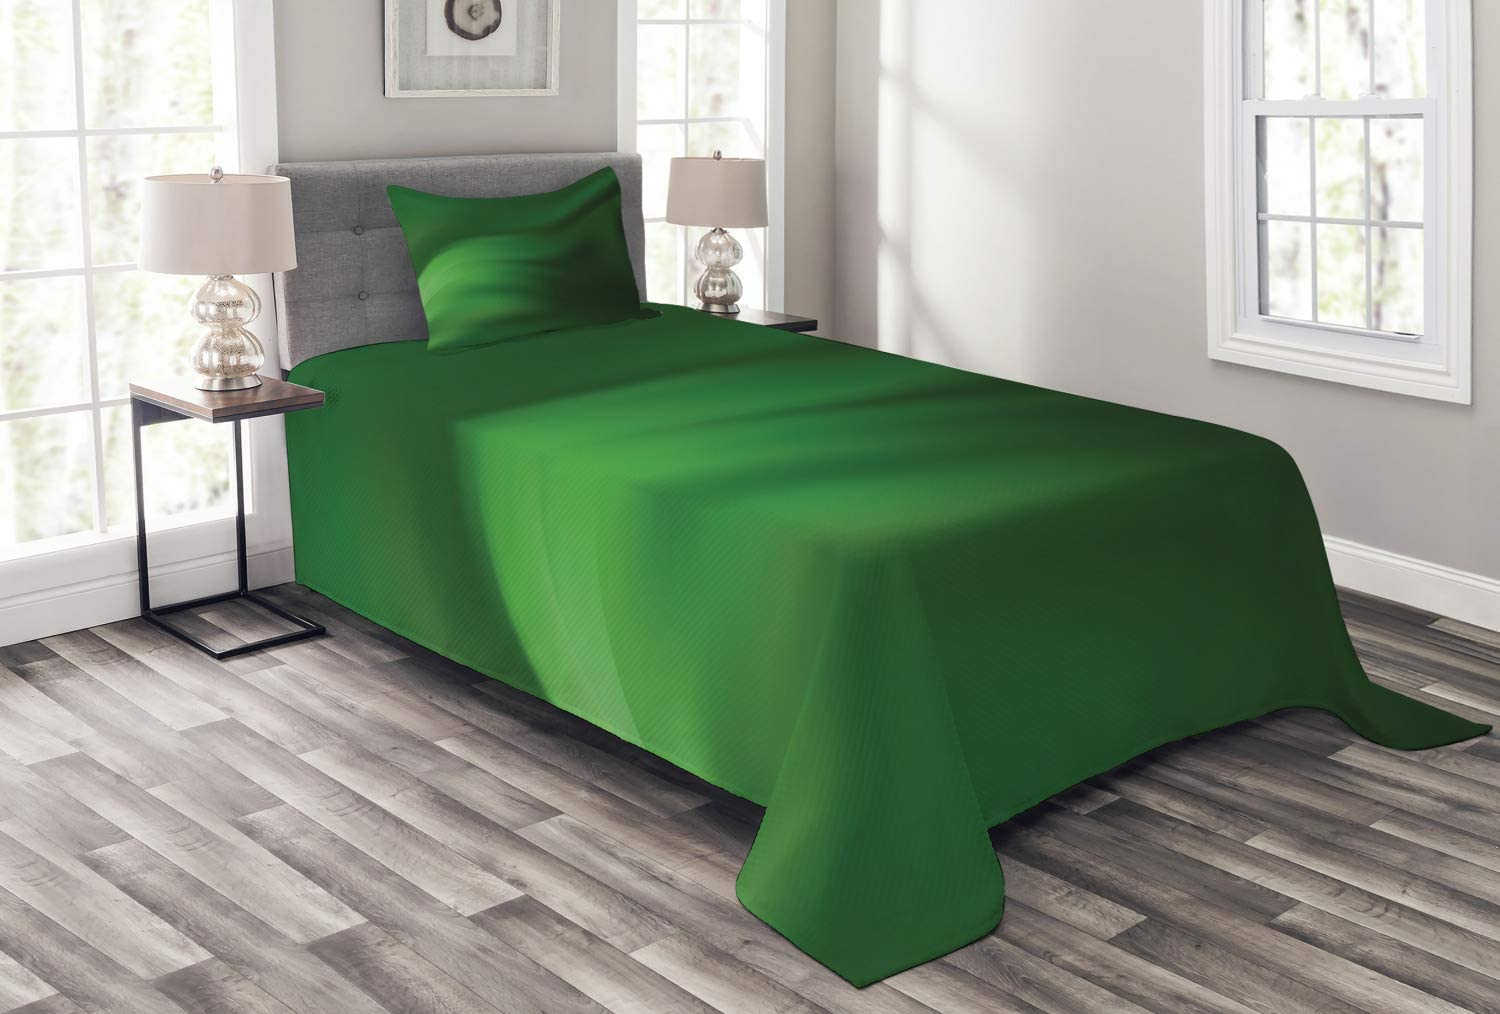 Ambesonne Forest Green Bedspread, Abstract Pattern with Color Wave in Green Shades Ombre Effect, Decorative Quilted 2 Piece Coverlet Set with Pillow Sham, Twin Size, Forest Green